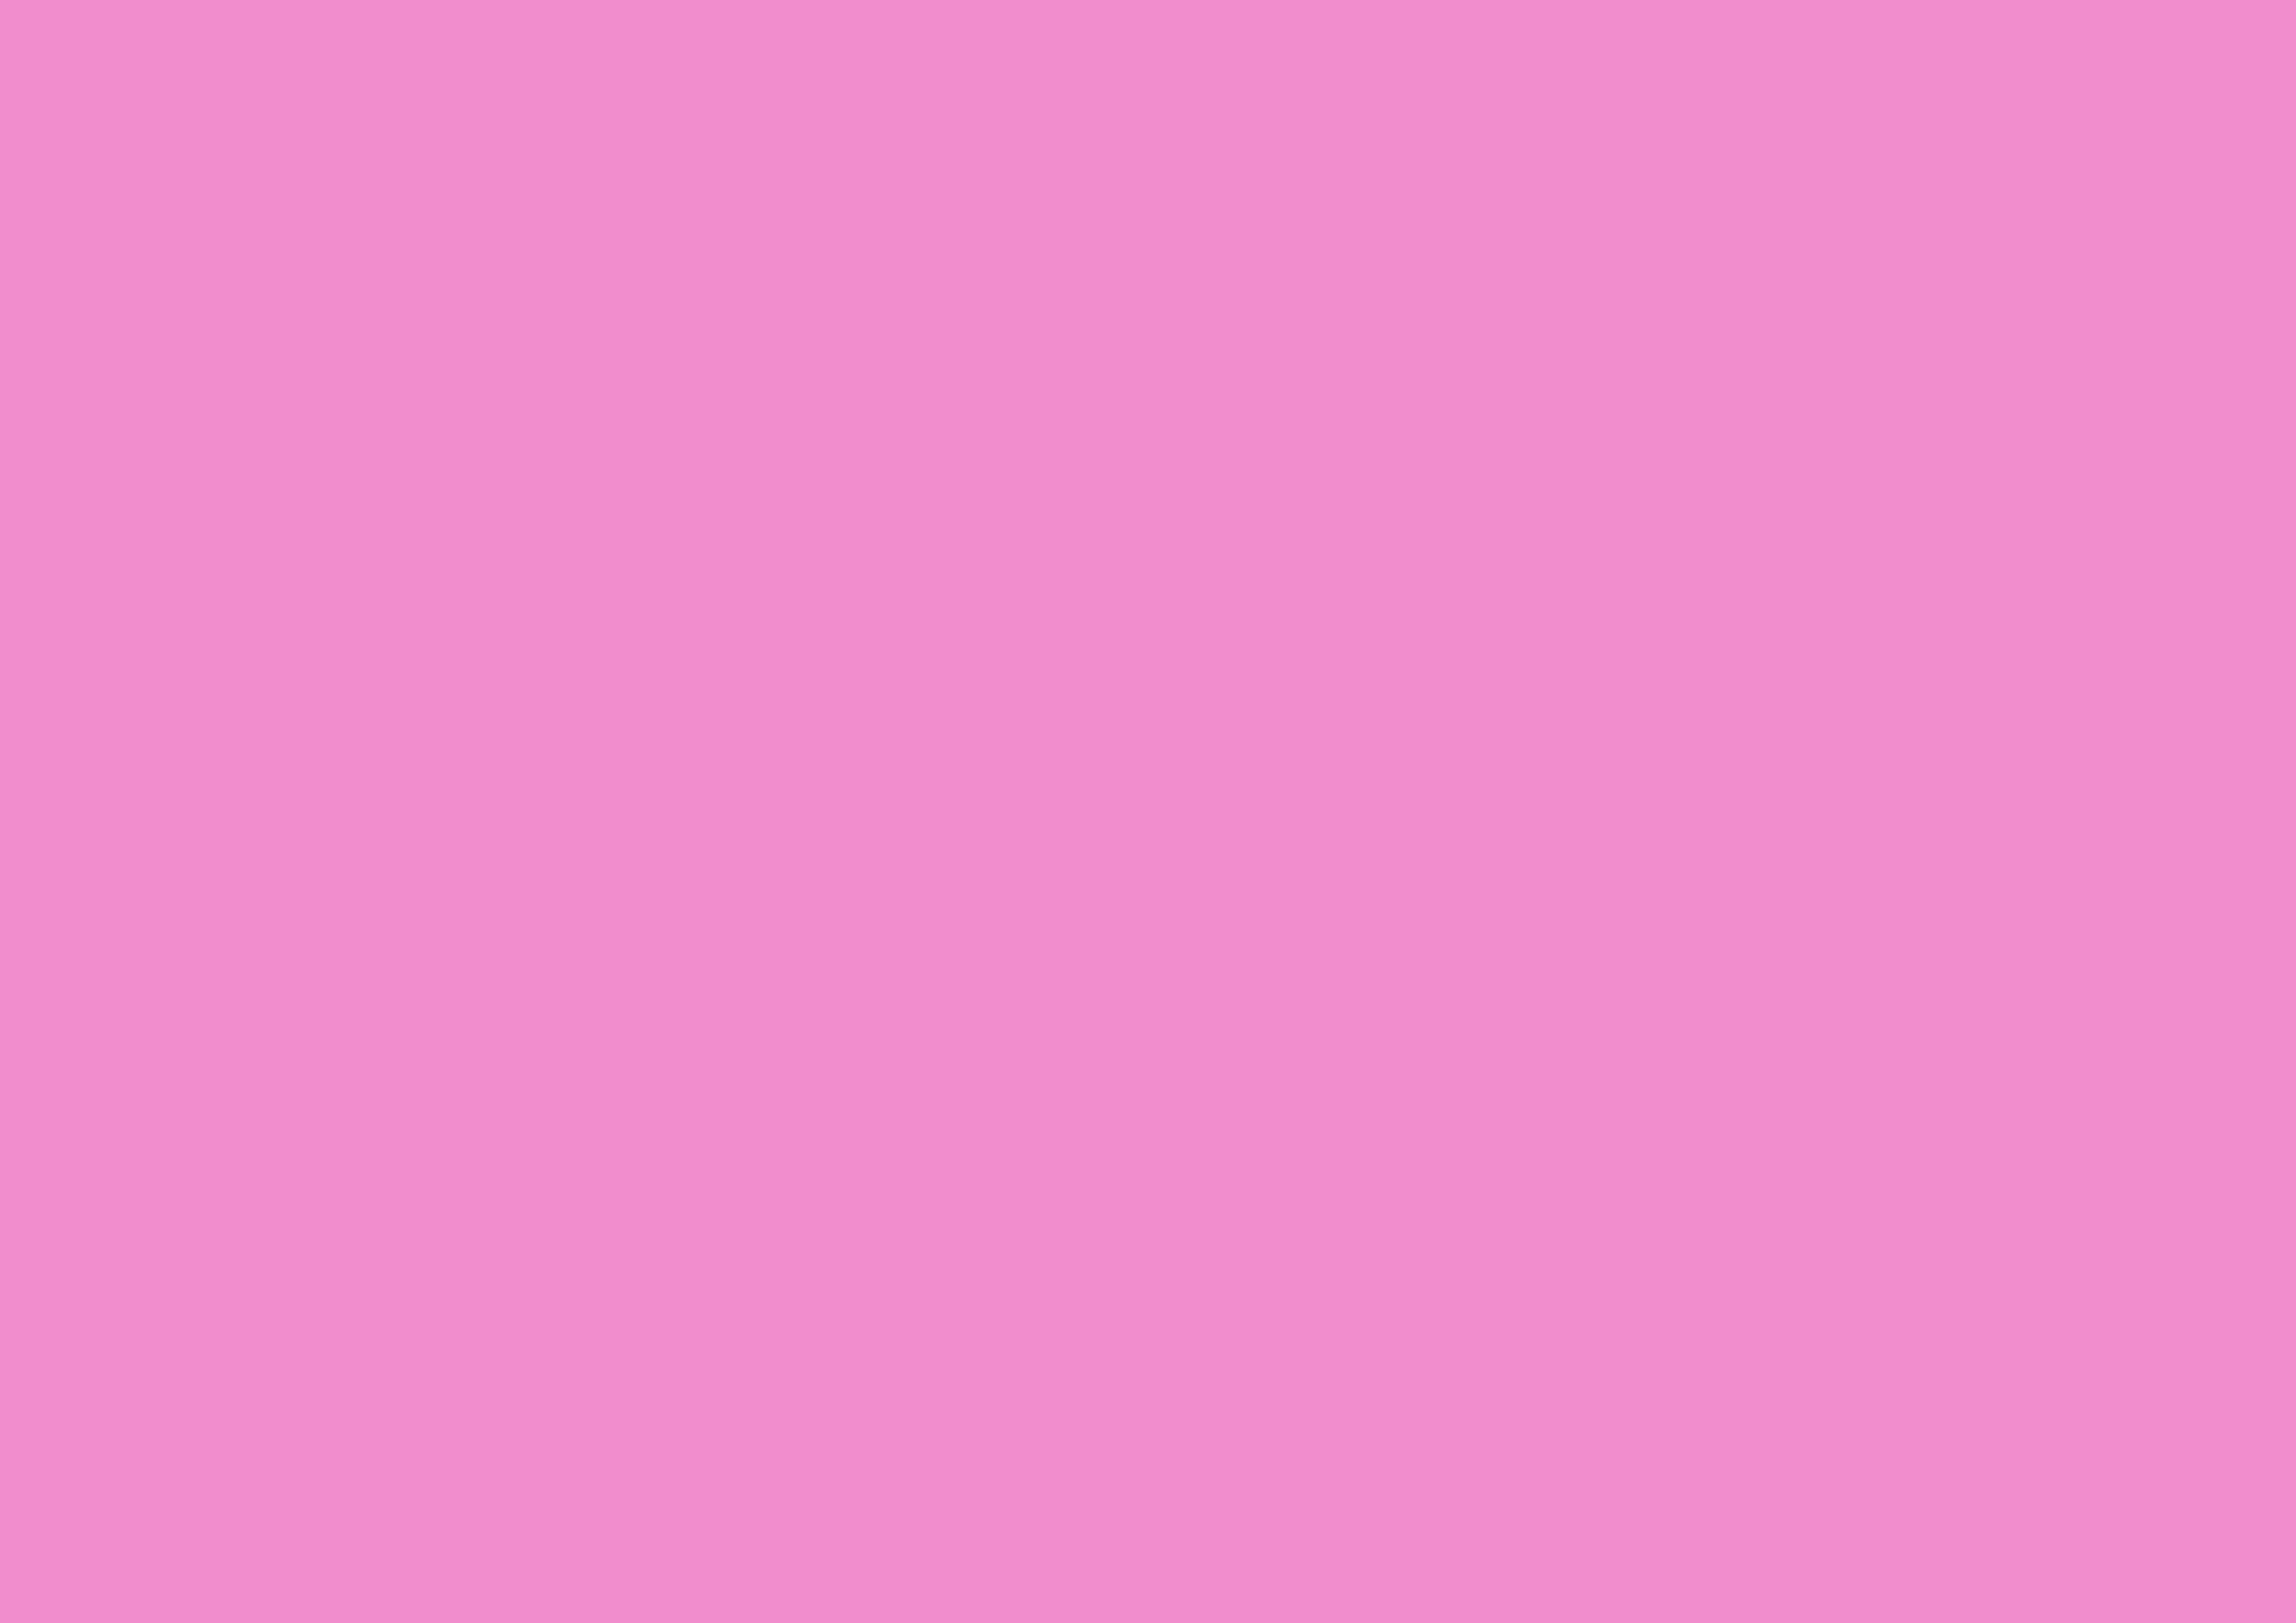 3508x2480 Orchid Pink Solid Color Background